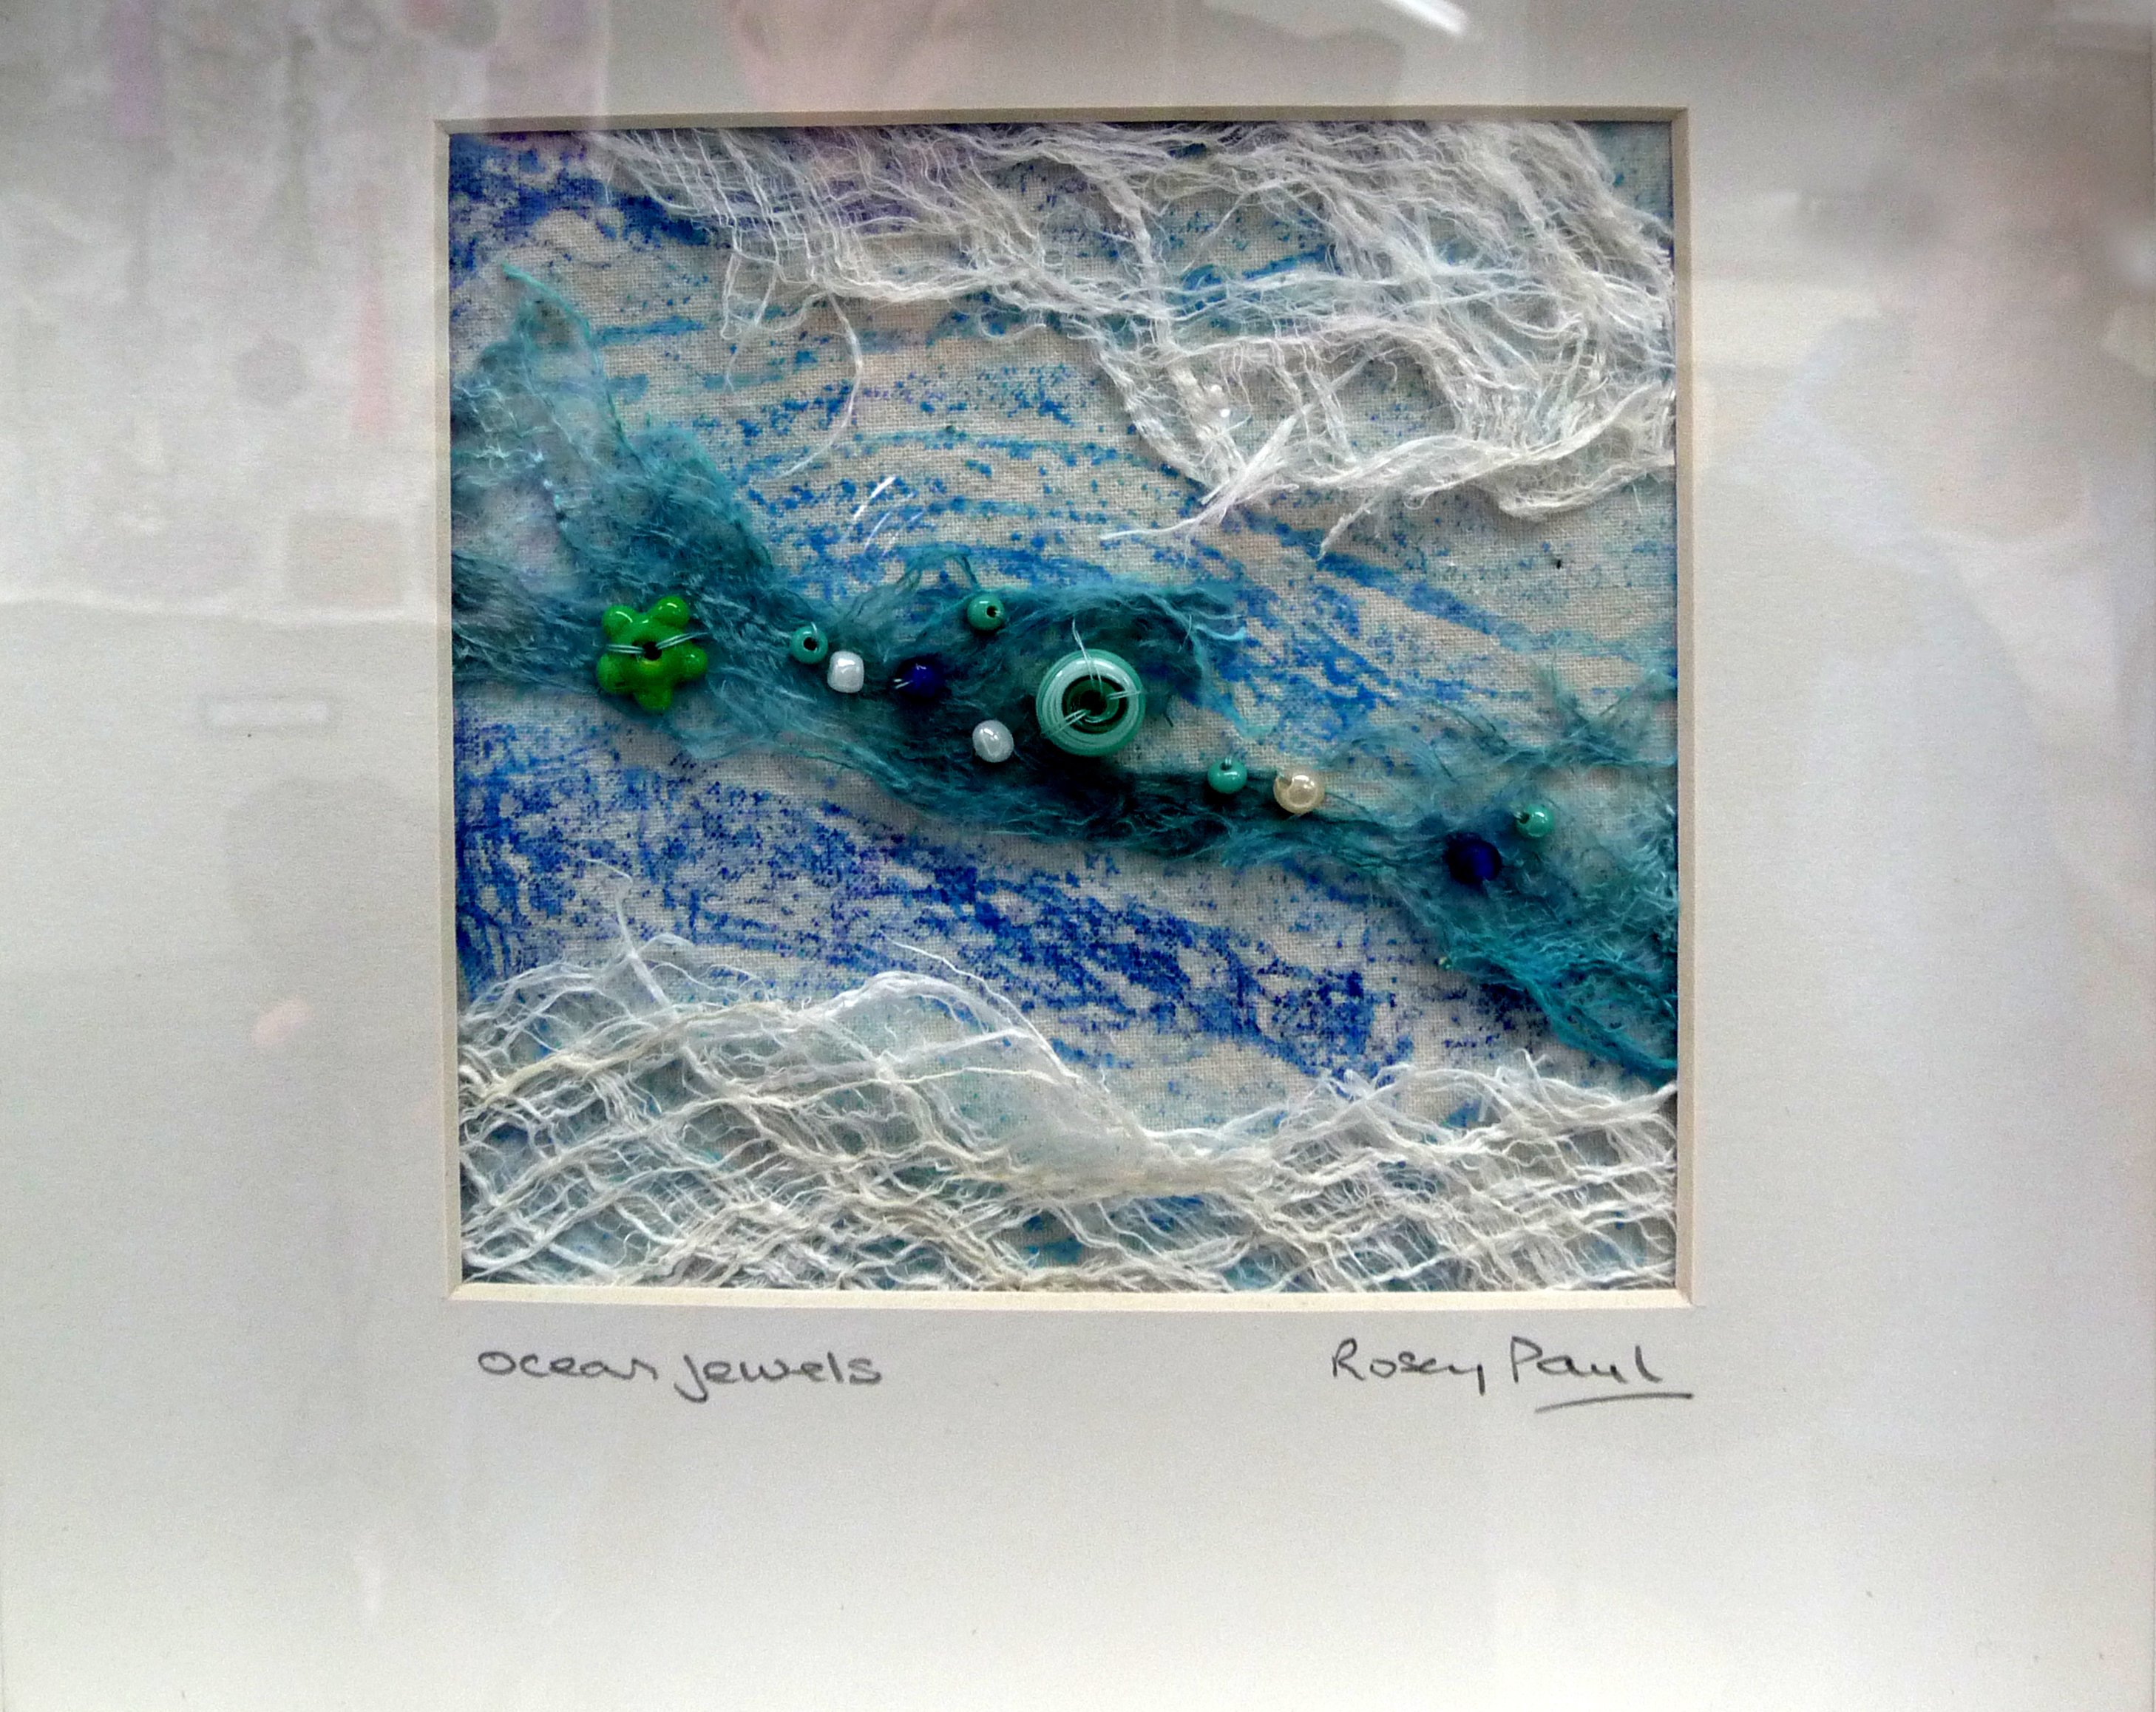 OCEAN JEWELS, embroidery by Rosey Paul